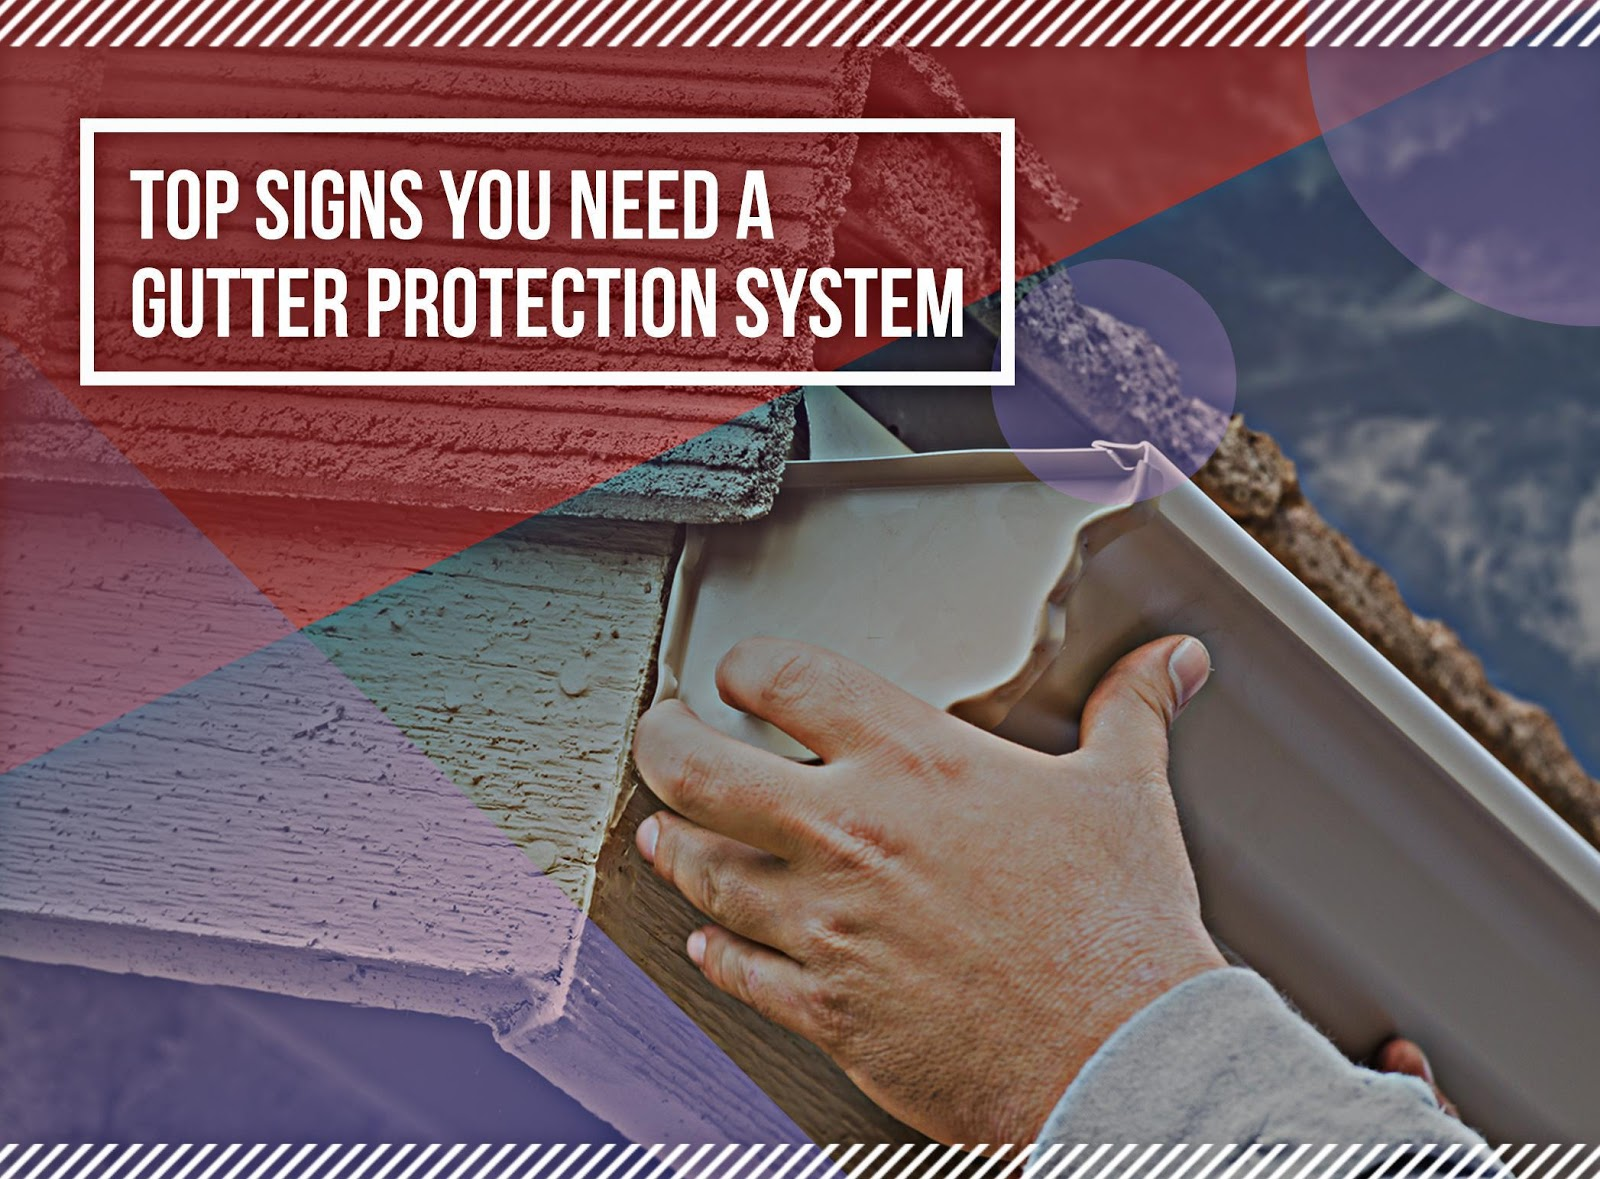 Top Signs You Need a Gutter Protection System